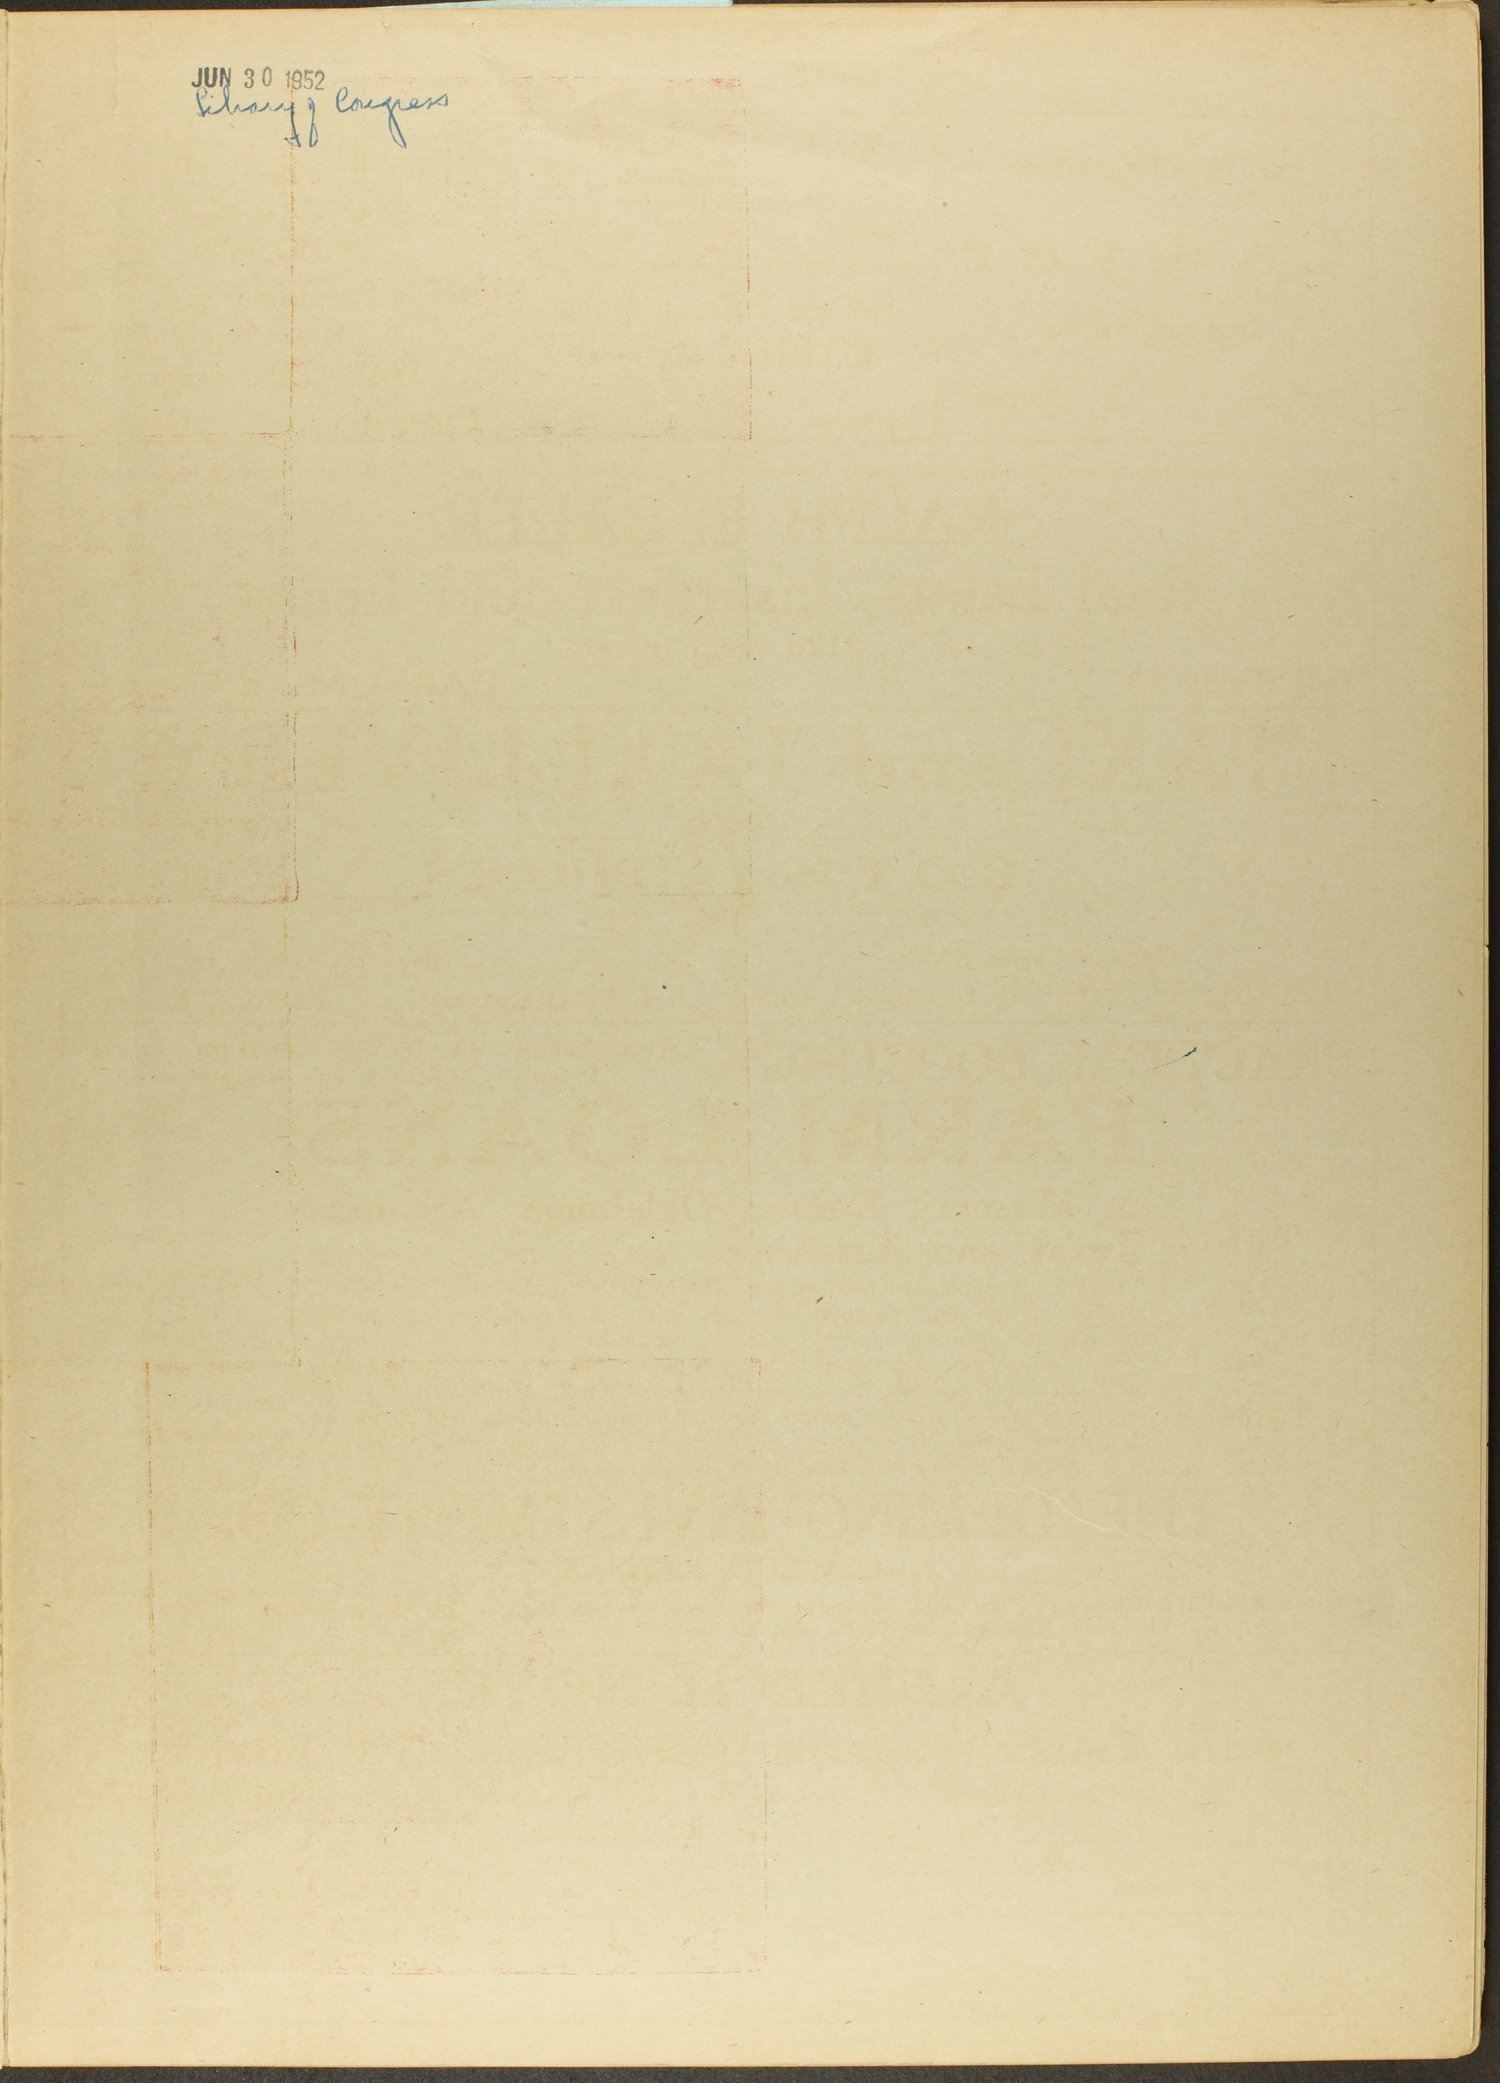 Atlas and plat book of Labette County, Kansas - 3